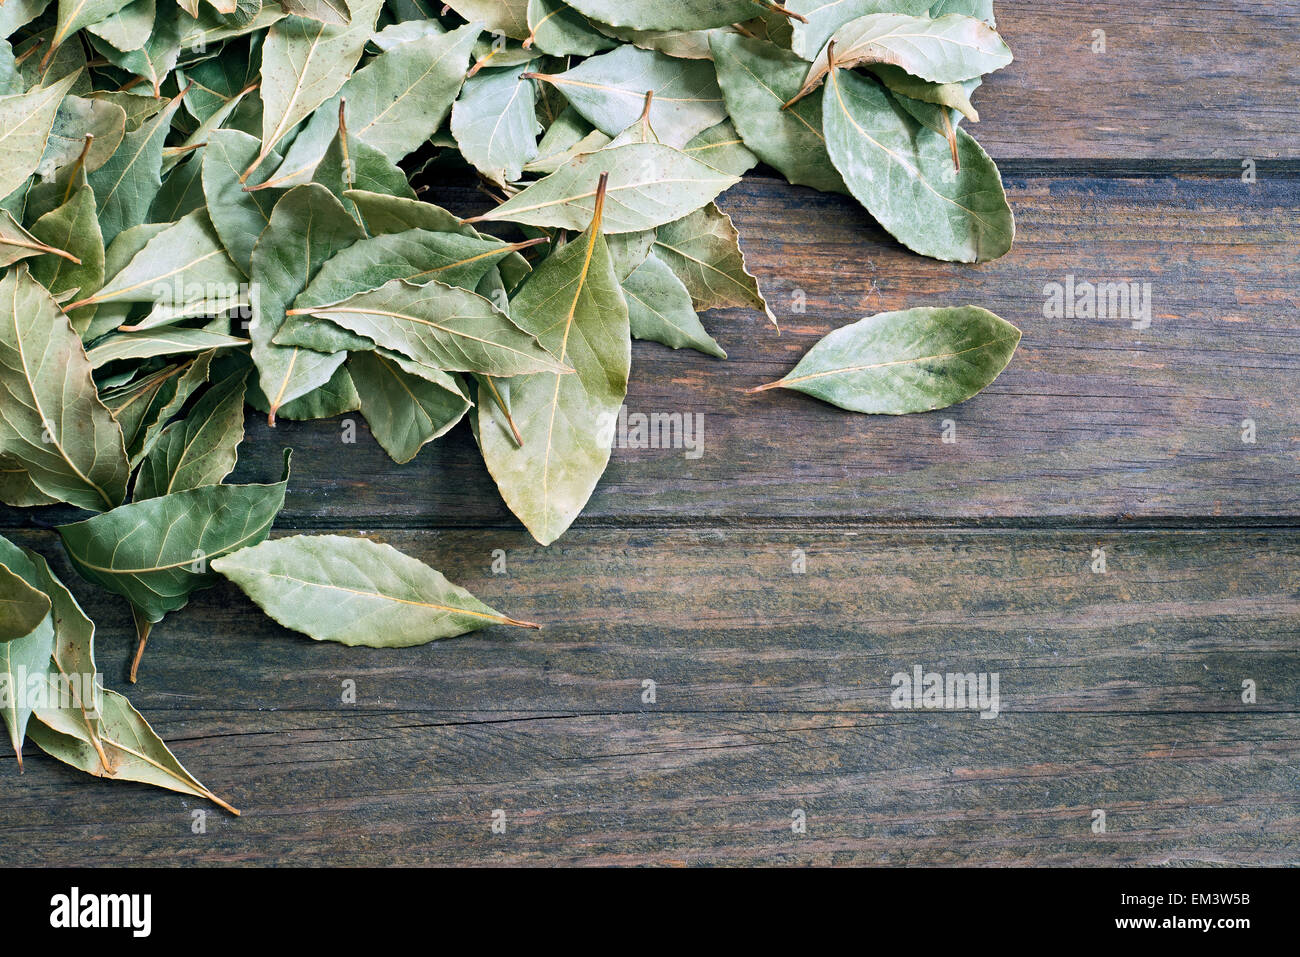 Arrangement of bay leaves over wooden table - Stock Image